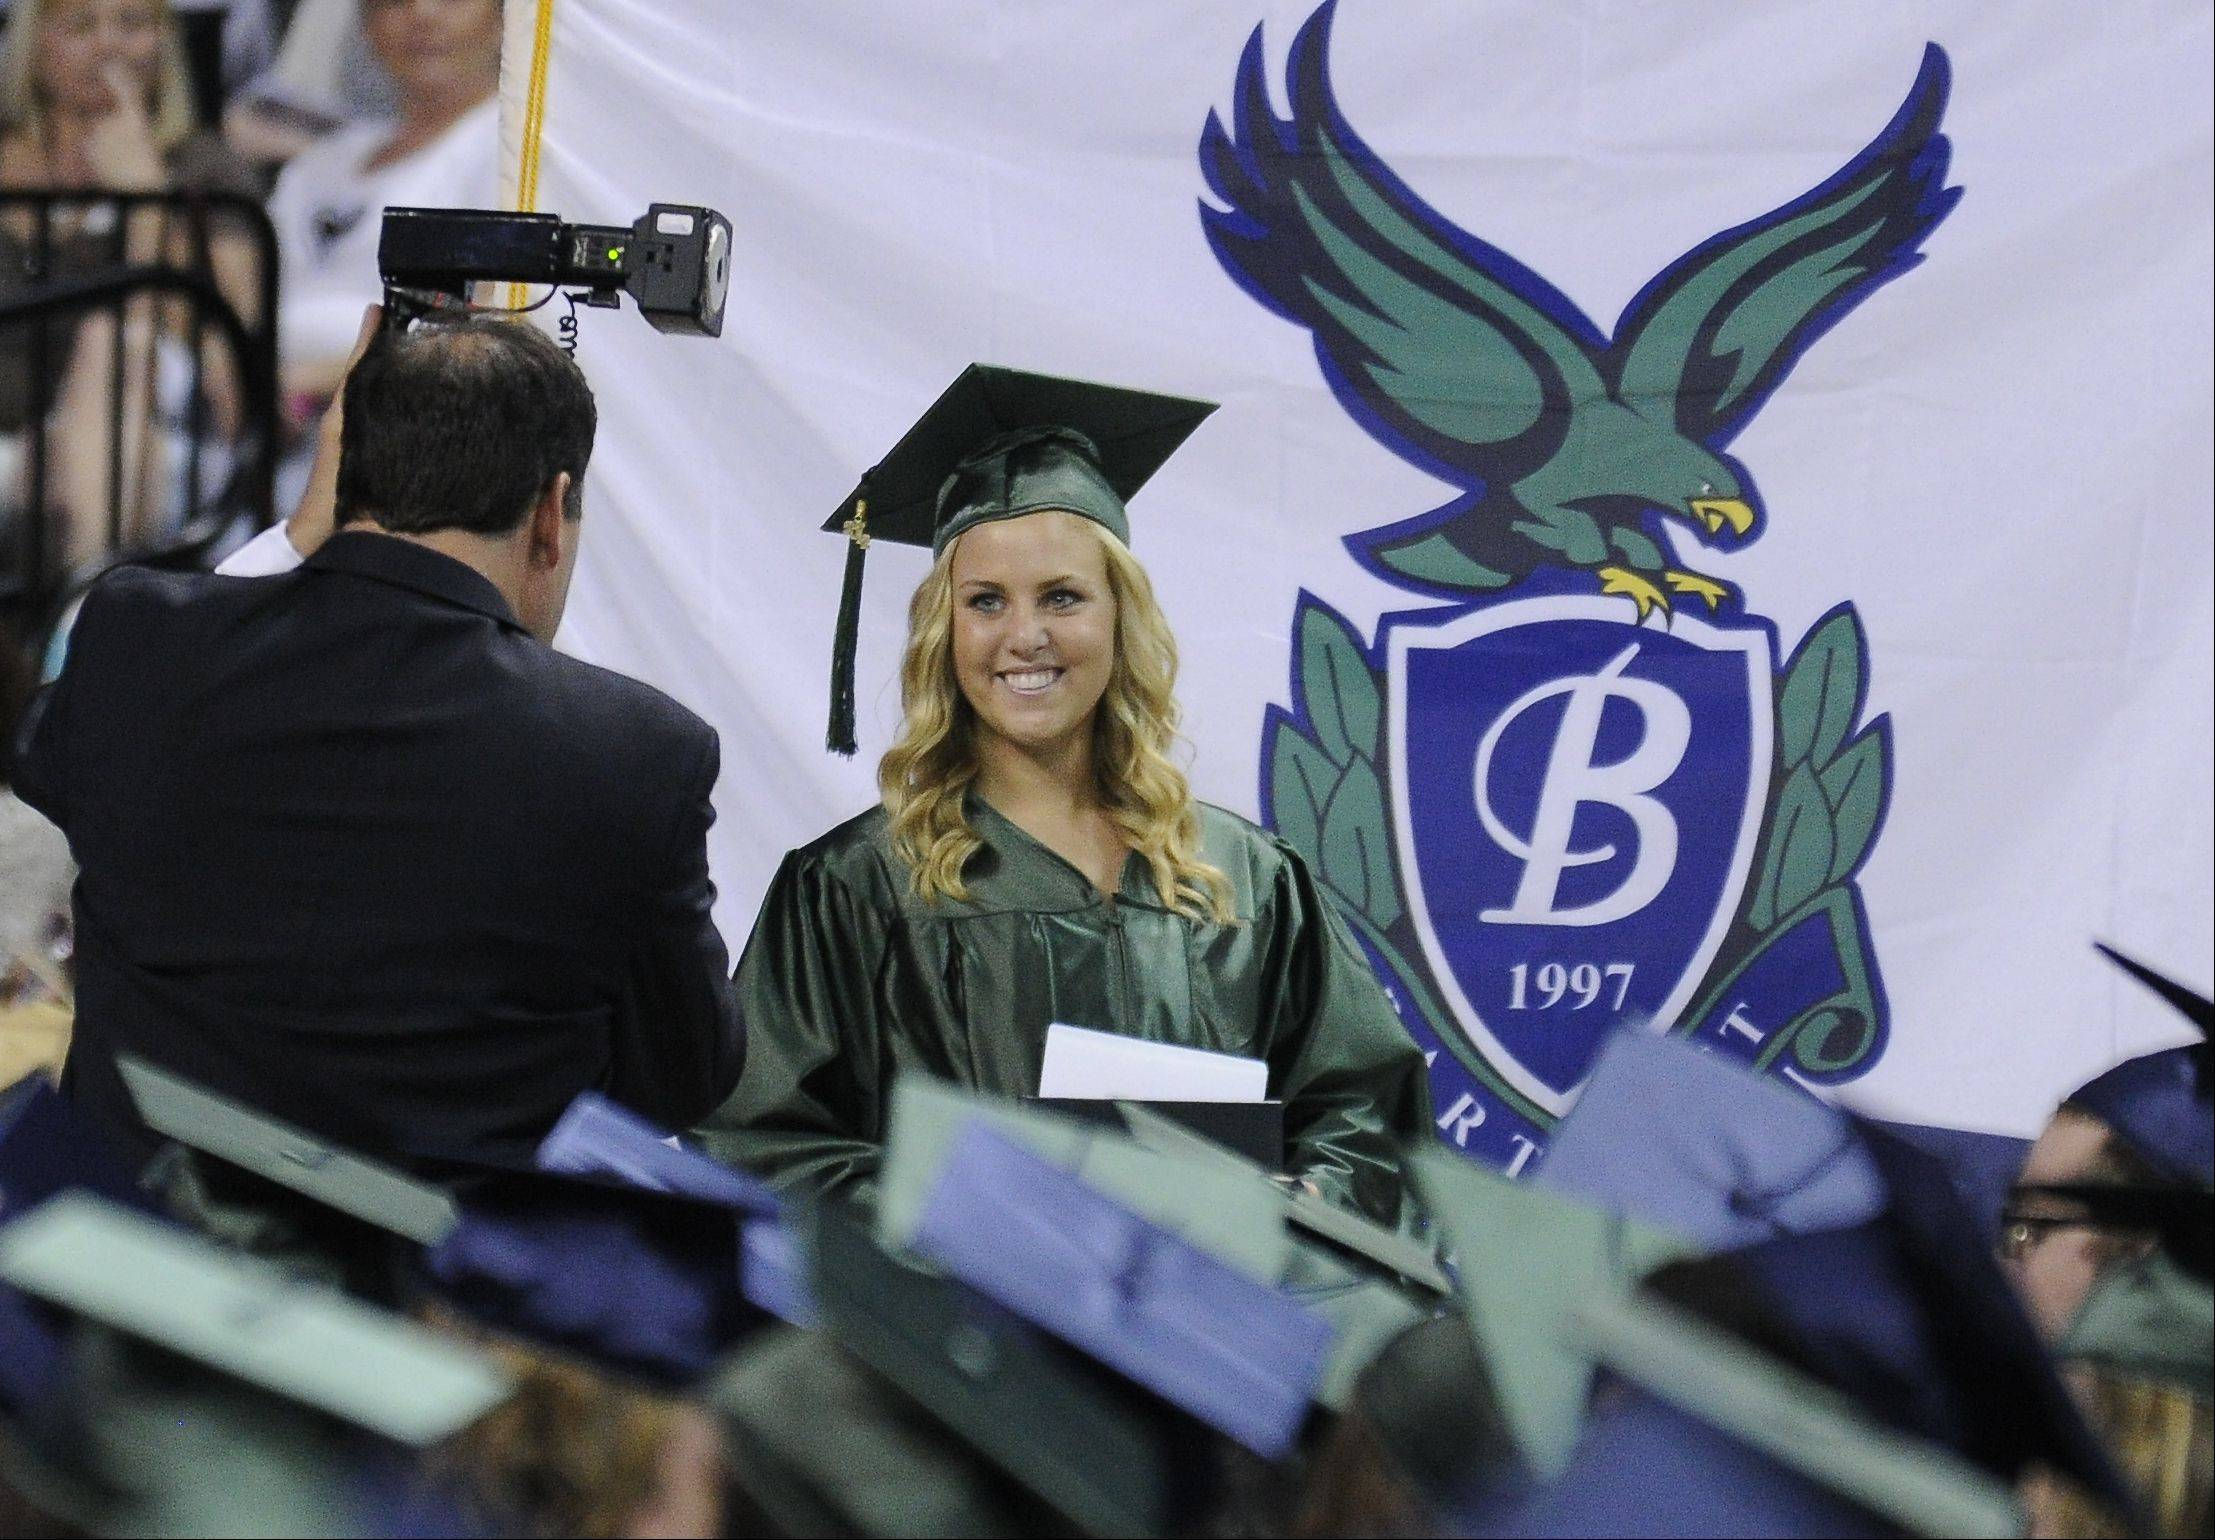 Images from the Bartlett High School graduation on Saturday, May 26th at the Sears Centre in Hoffman Estates.